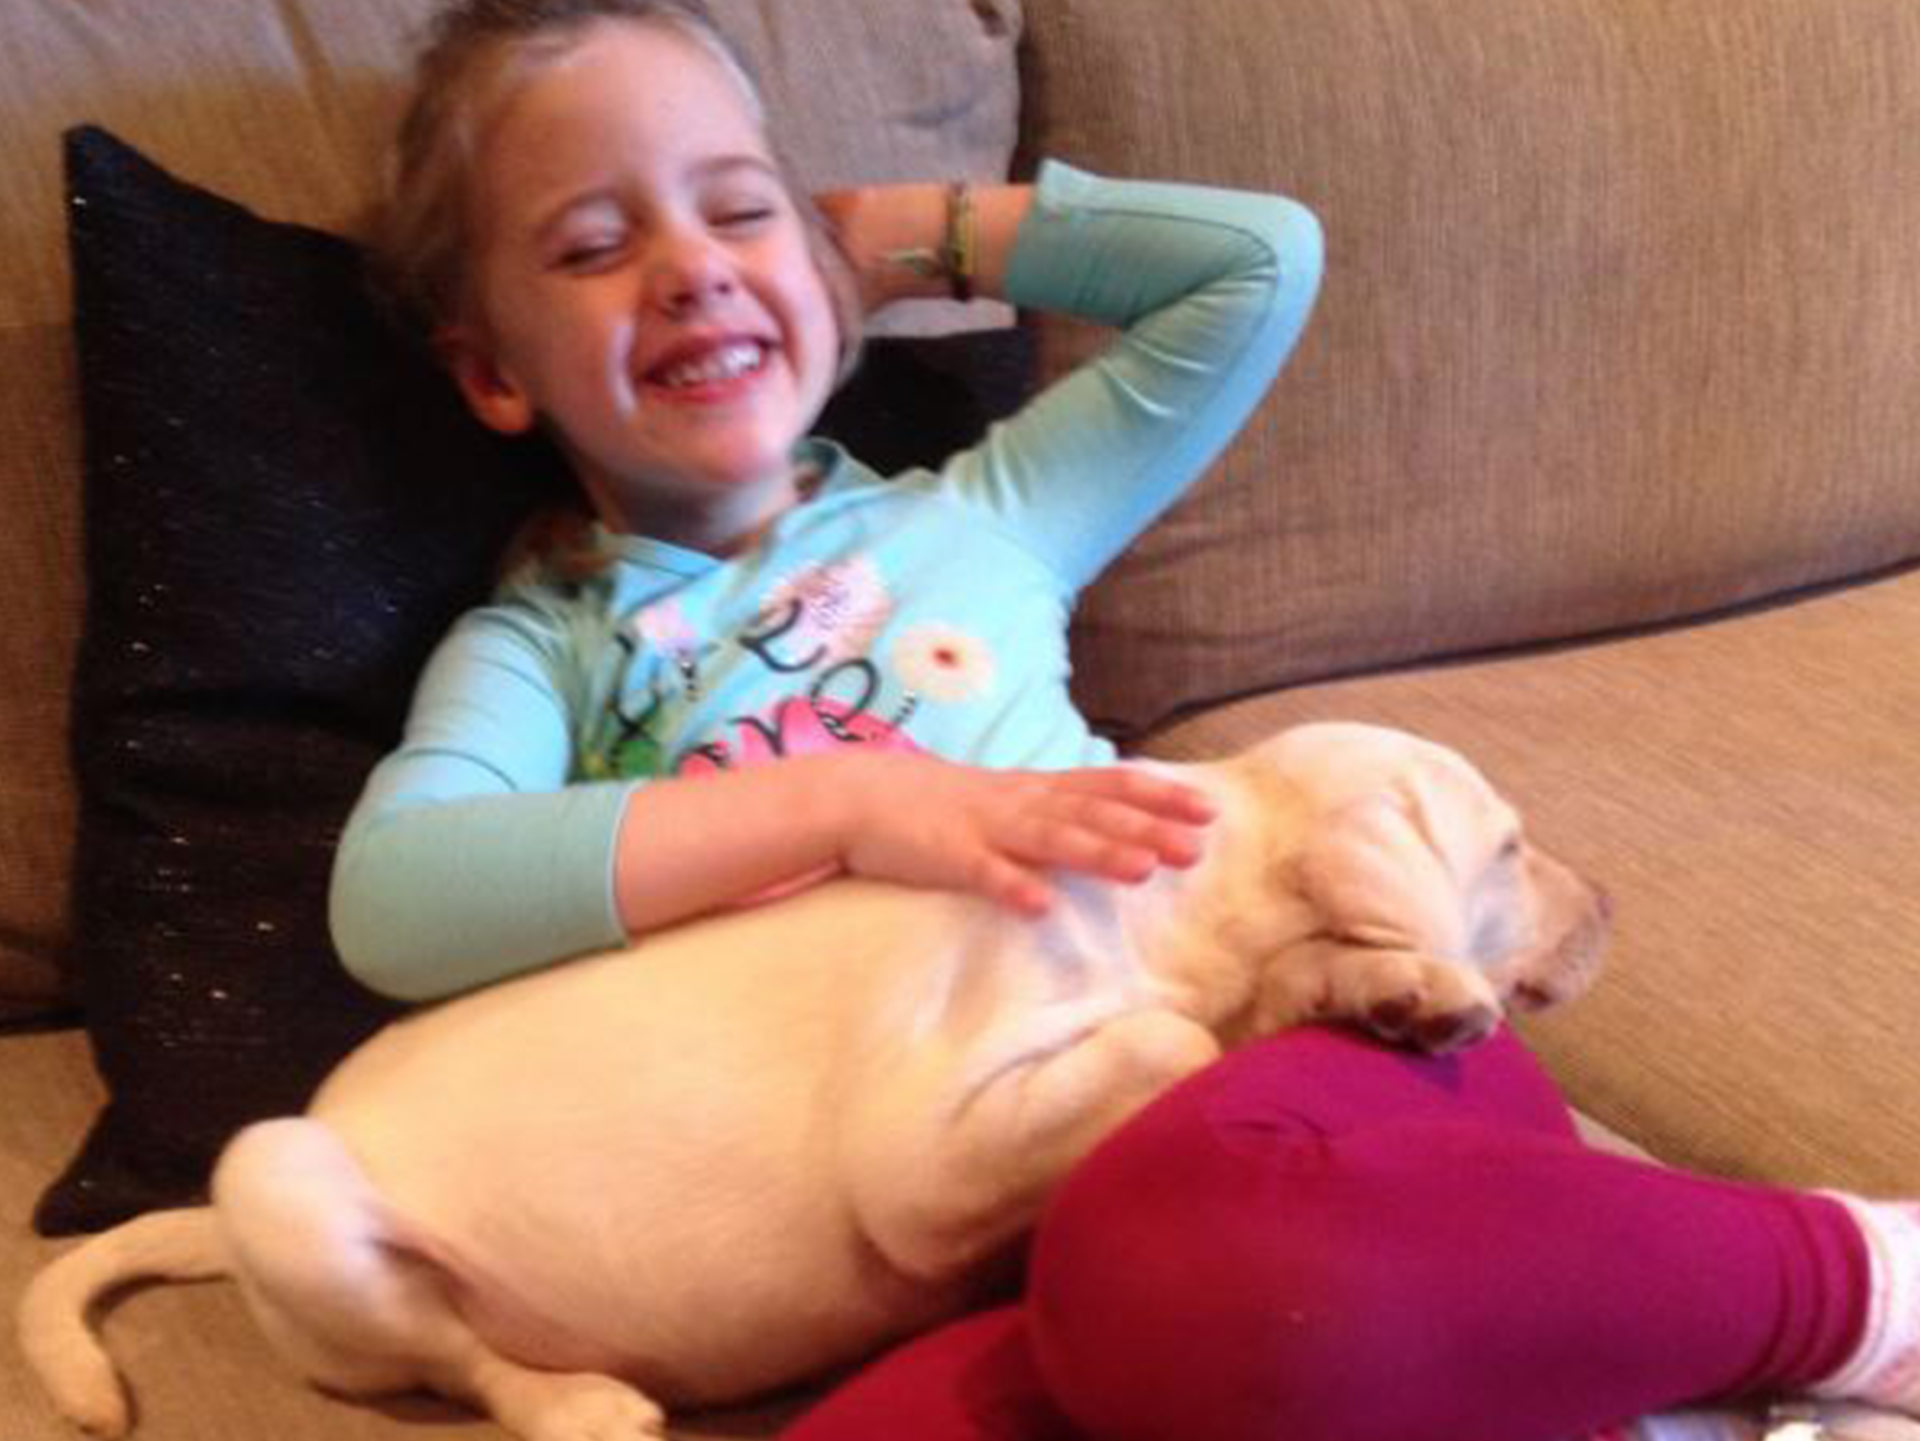 Puppy thieves return dog to 'devastated' four-year-old girl